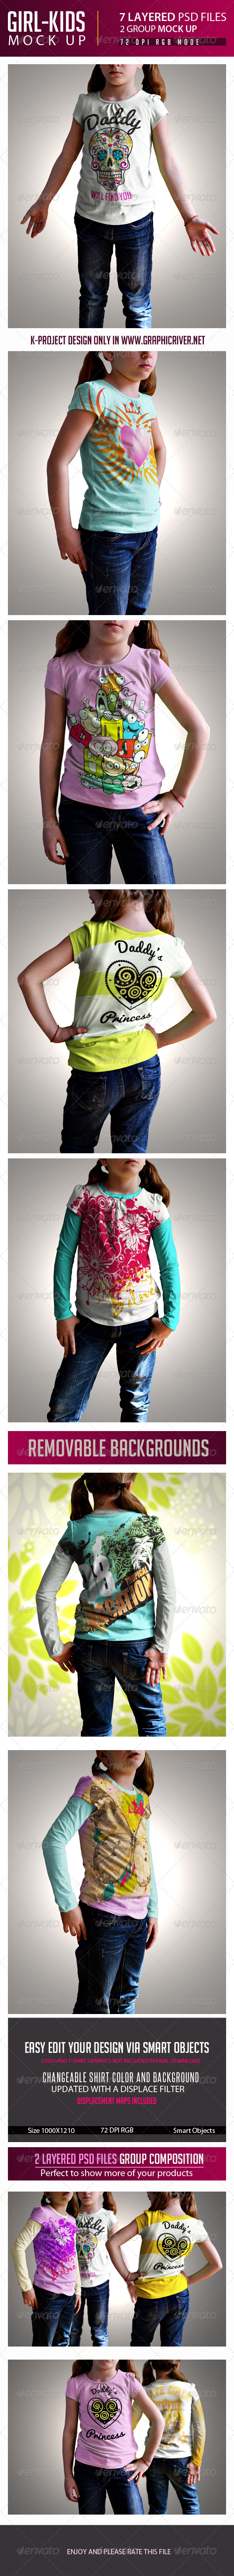 GraphicRiver Girl Kids T-Shirt Mock Up 7204419